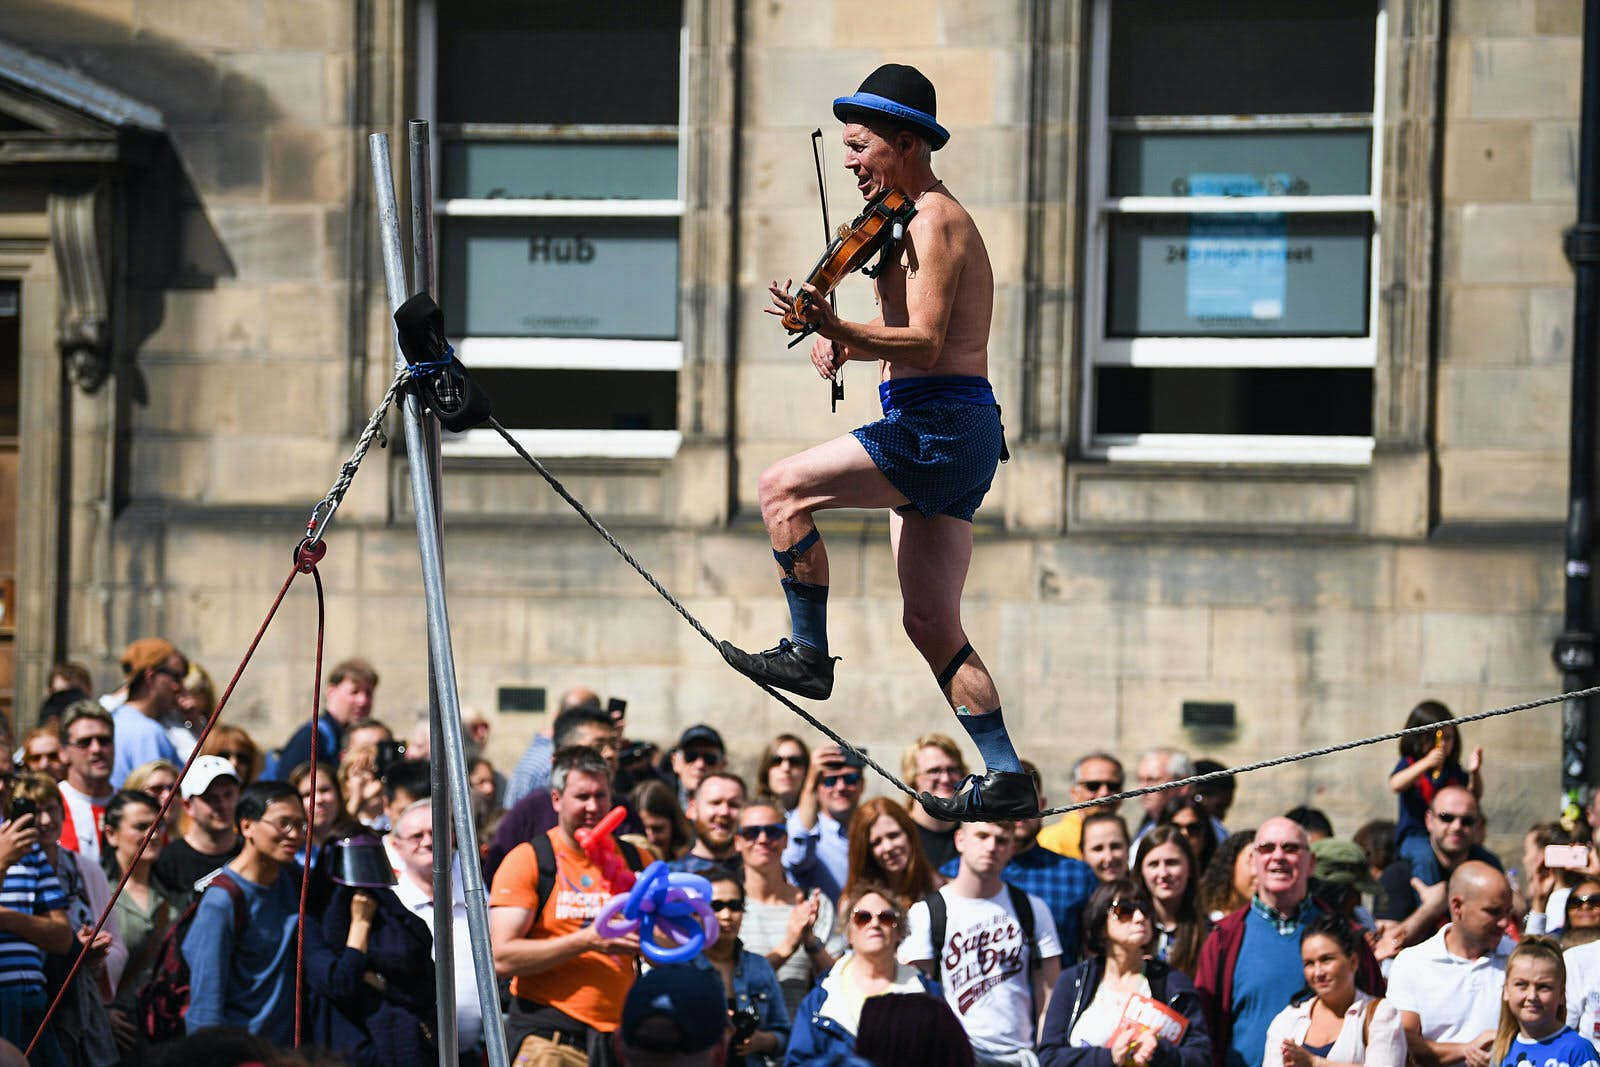 Edinburgh Festival Fringe entertainers perform on the Royal Mile. The Fringe is the largest performing arts festival in the world, with an excess of 30,000 performances of more than 2000 shows. A man is walking along a high line wearing shorts and a bowler hat while playing a violin. A huge crowd is gathered around to watch.